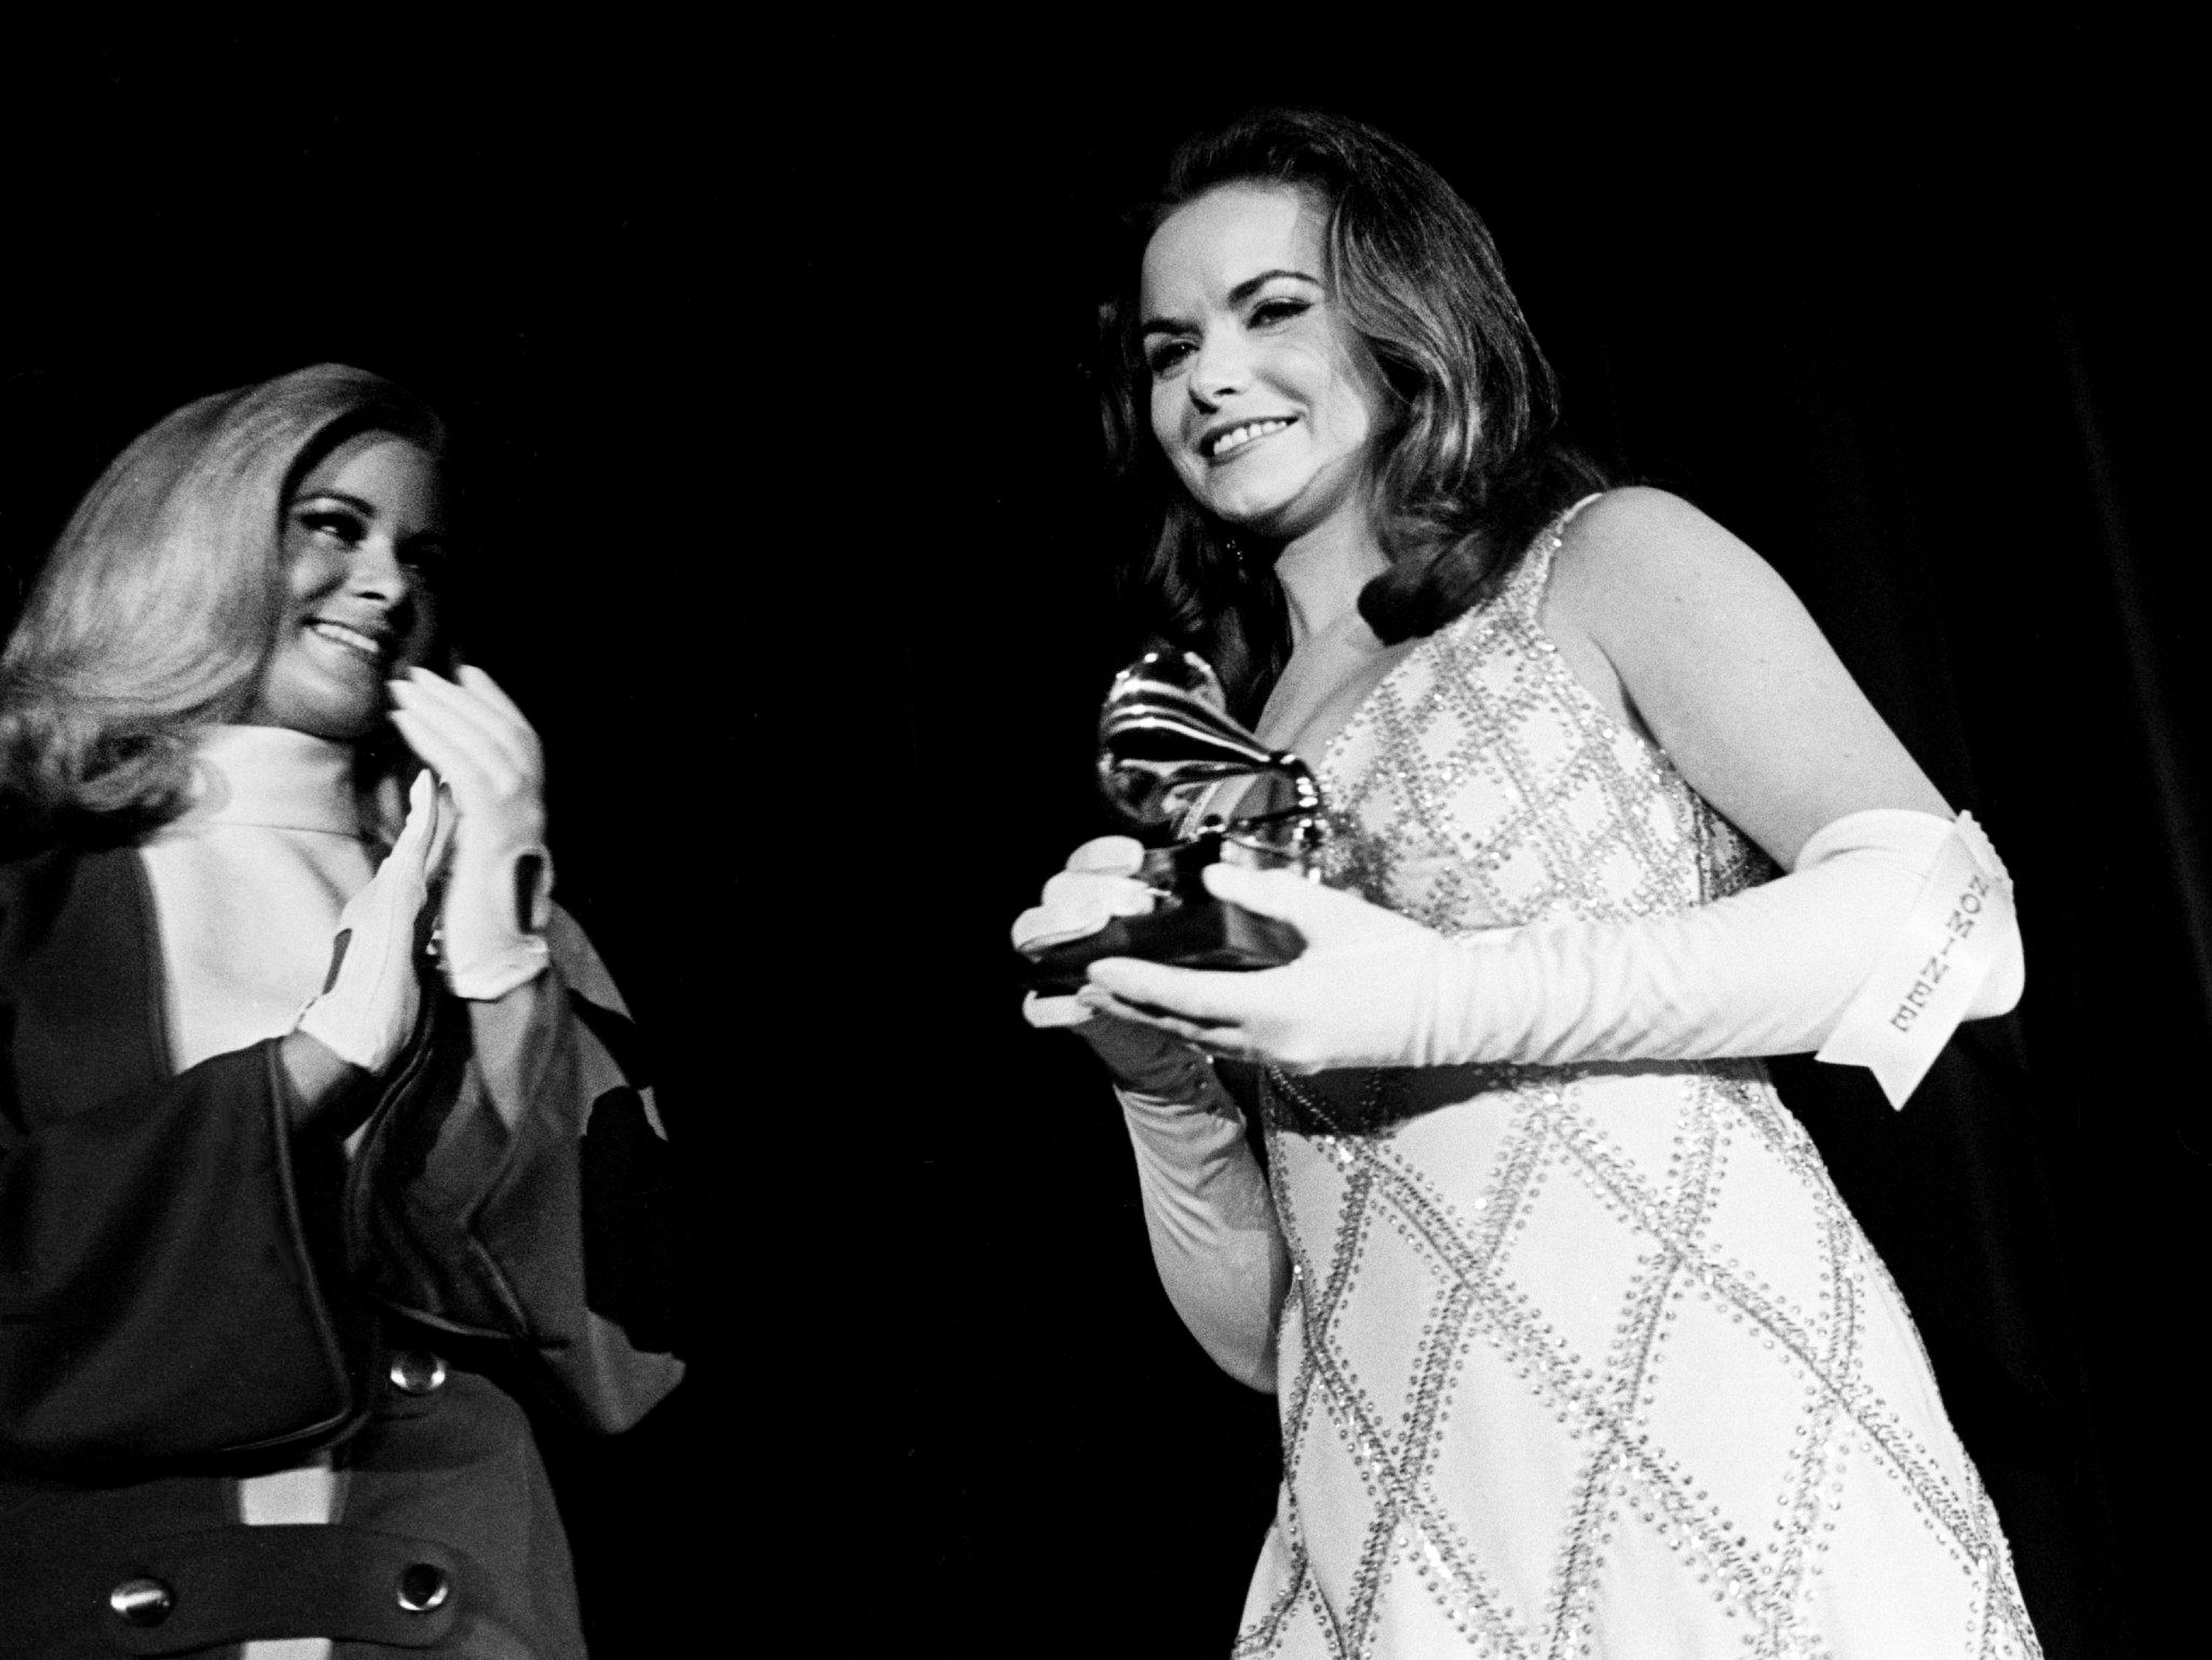 Jeannie C. Riley walks off stage with her Best Country Female Vocal Performance award during the 11th annual Grammy Award show at the National Guard Armory in Nashville March 12, 1969.